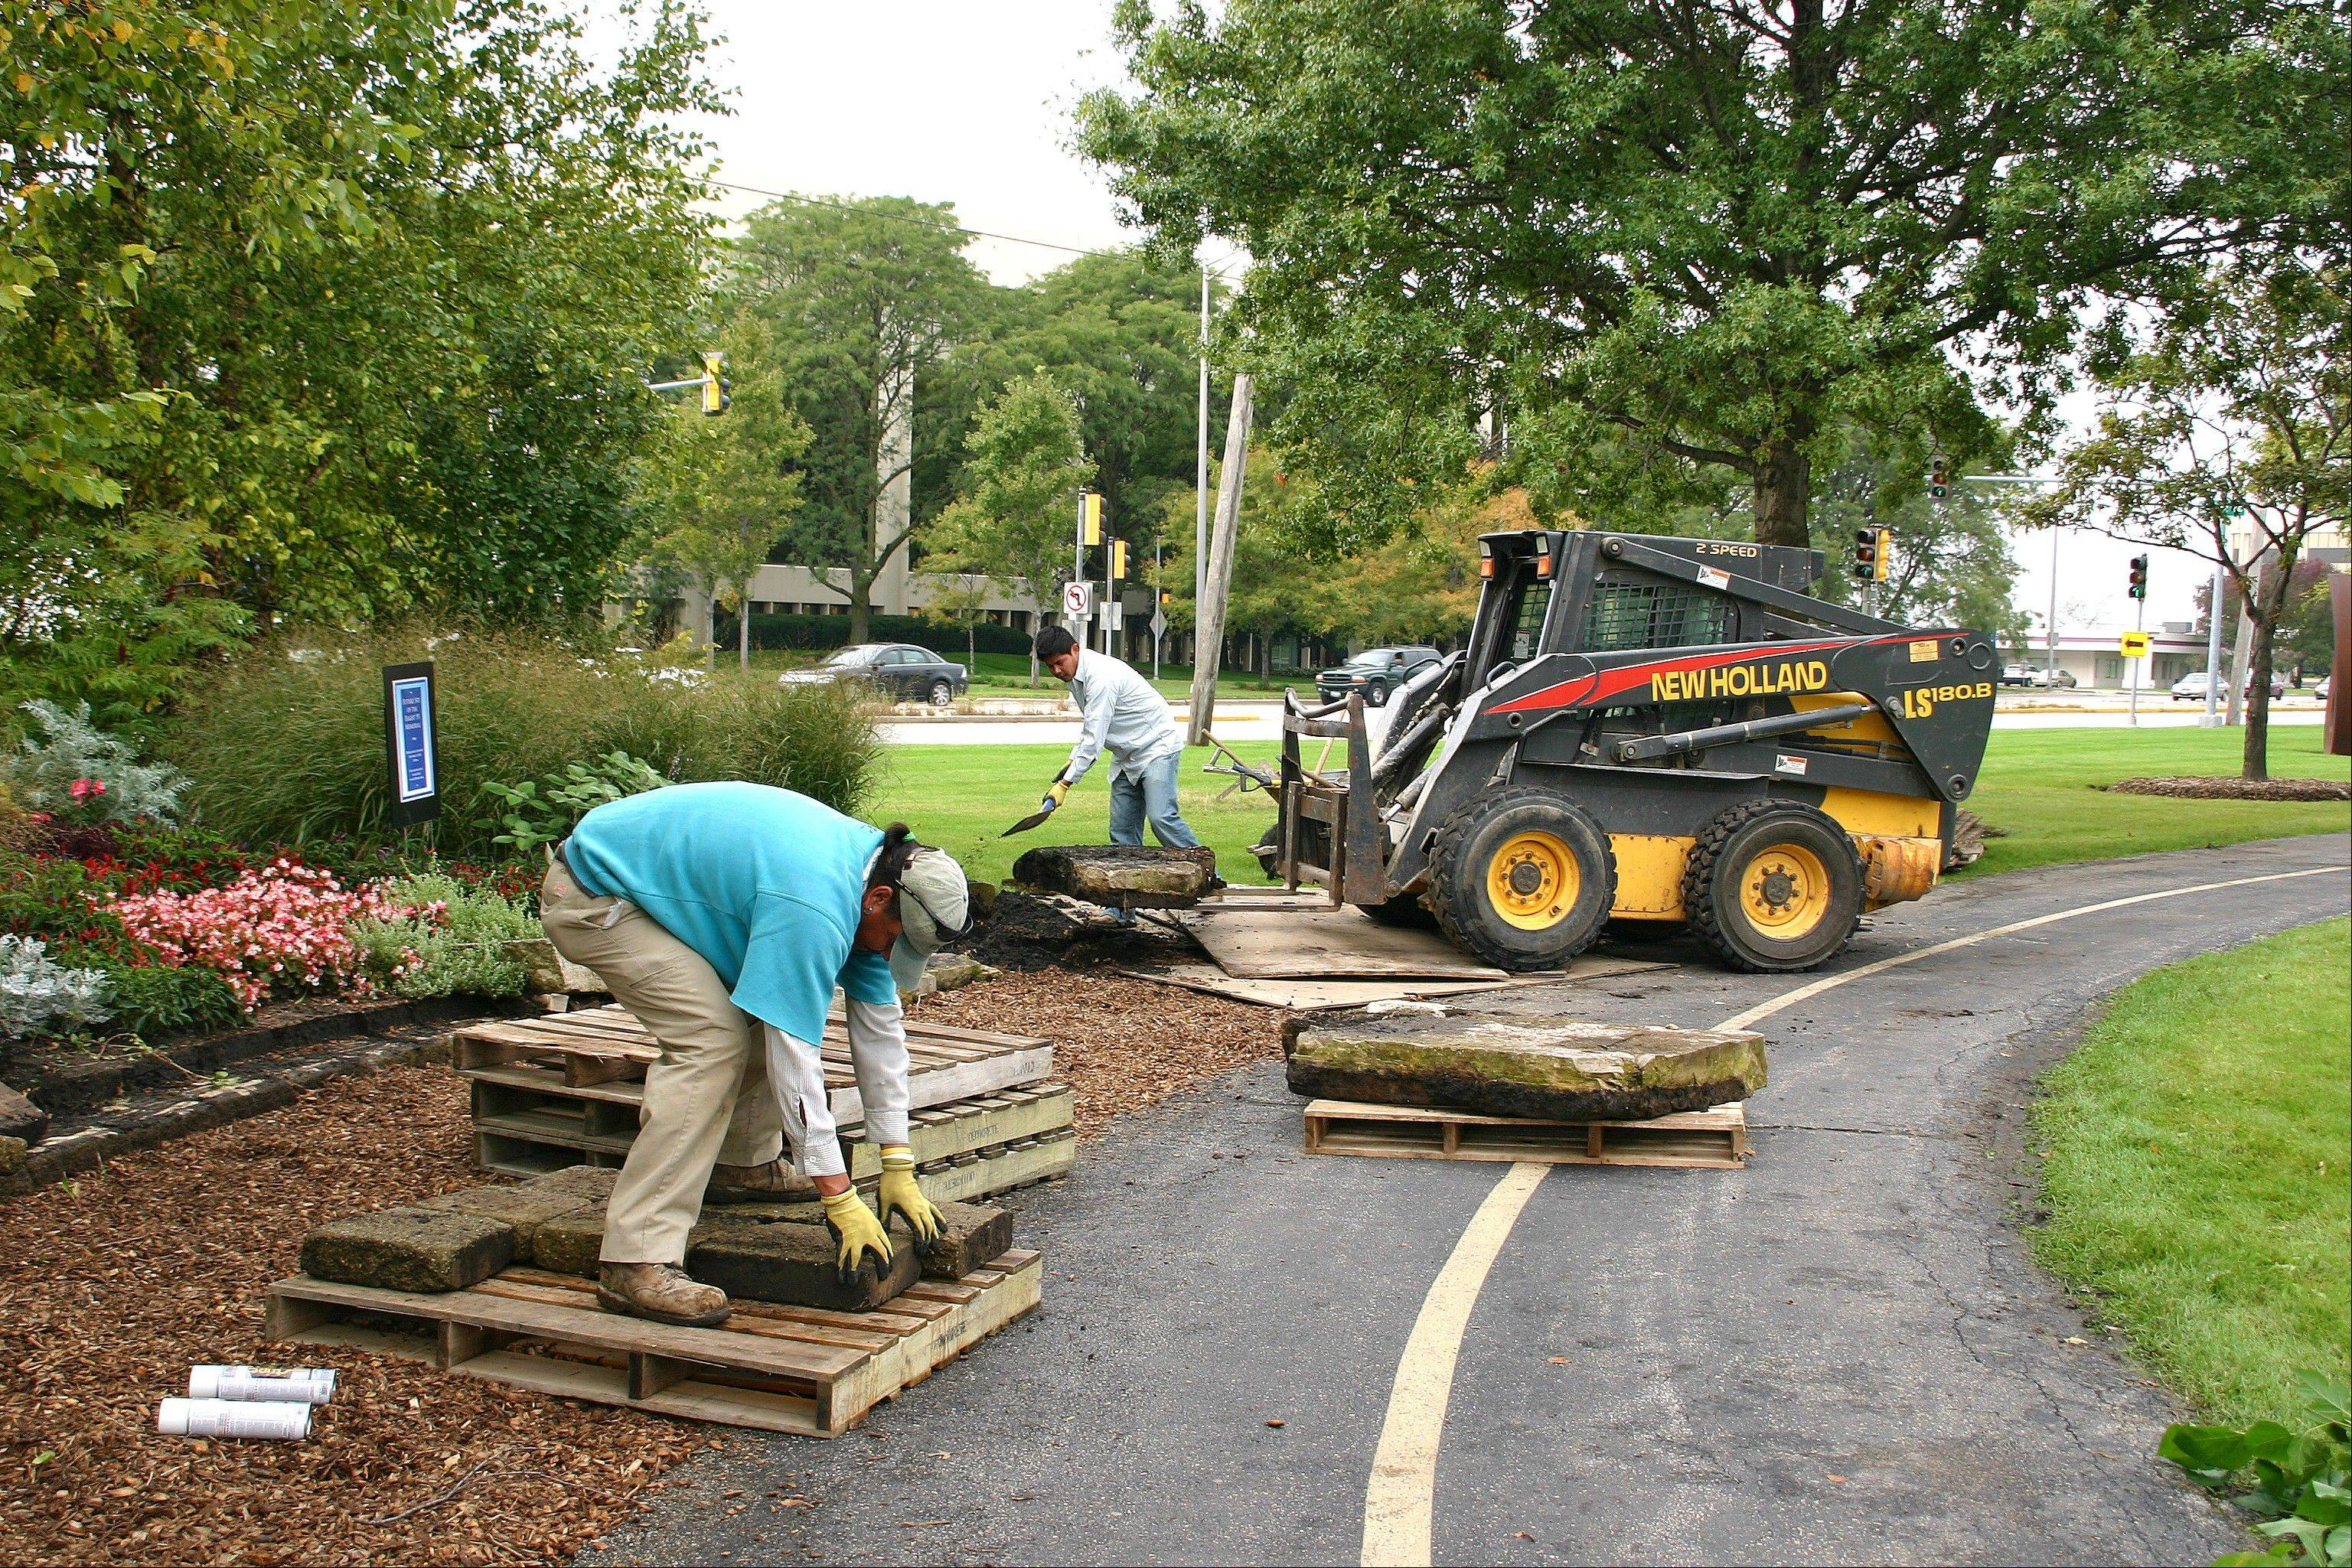 Existing planter wall stones are removed Thursday at Lake Park to make way for the Flight 191 Memorial that will be unveiled on Oct. 15.